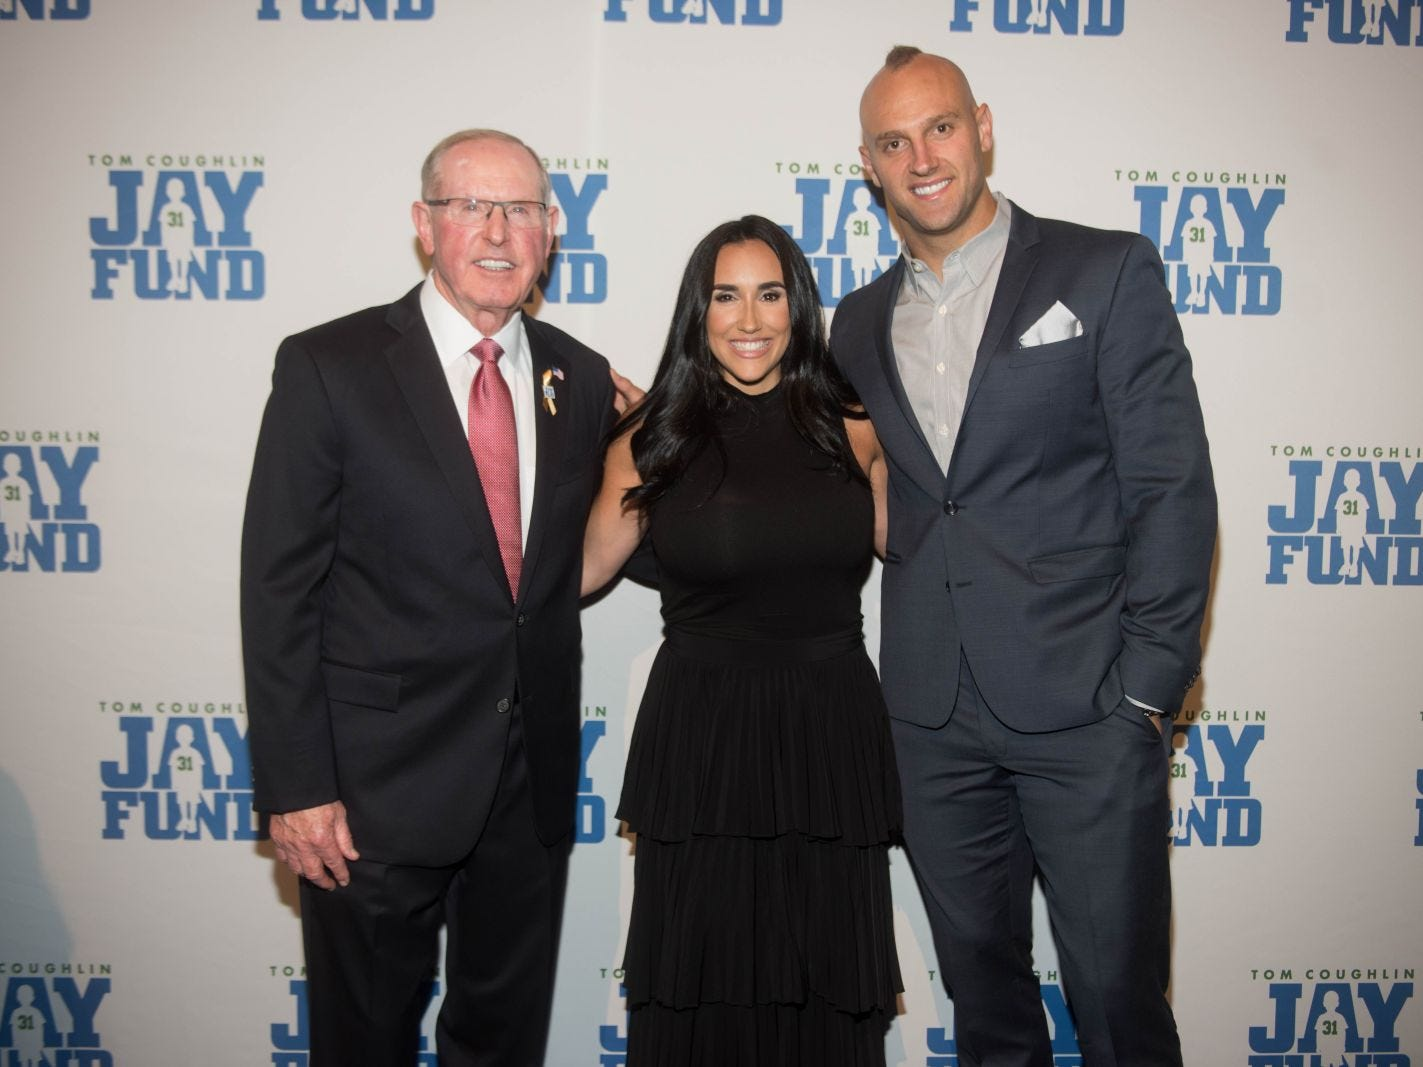 Tom Coughlin, Danielle Conti and Mark Herzlich. The 14th annual Jay Fund Champions for Children Gala was held at Cipriani 42nd Street. 09/21/2018